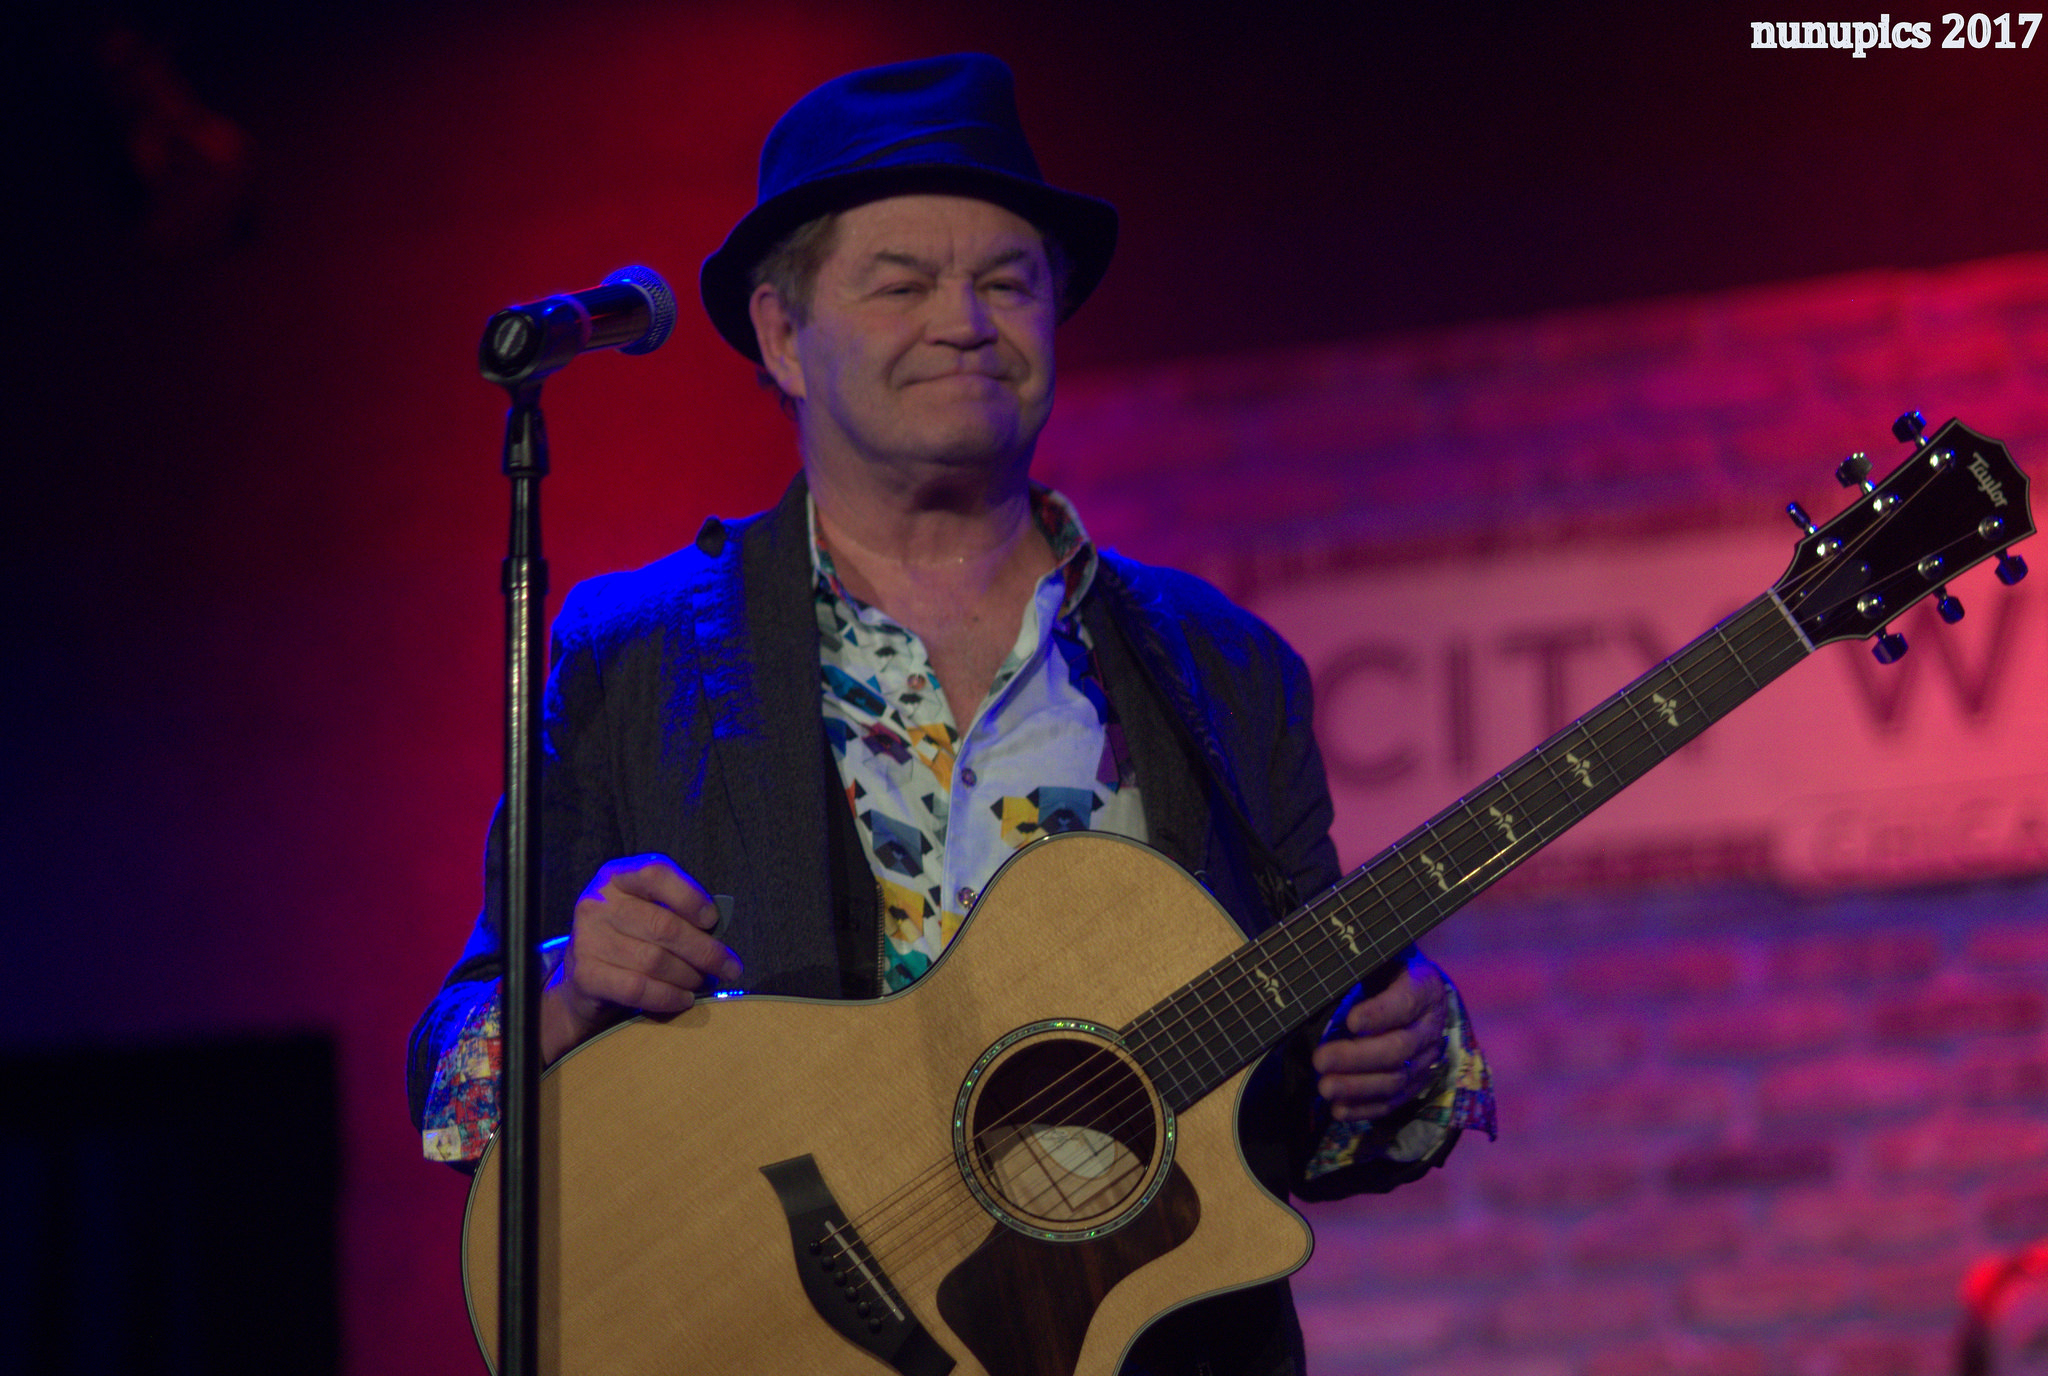 Photos / Setlist / Videos | Micky Dolenz @ City Winery - June 13 & 14, 2017